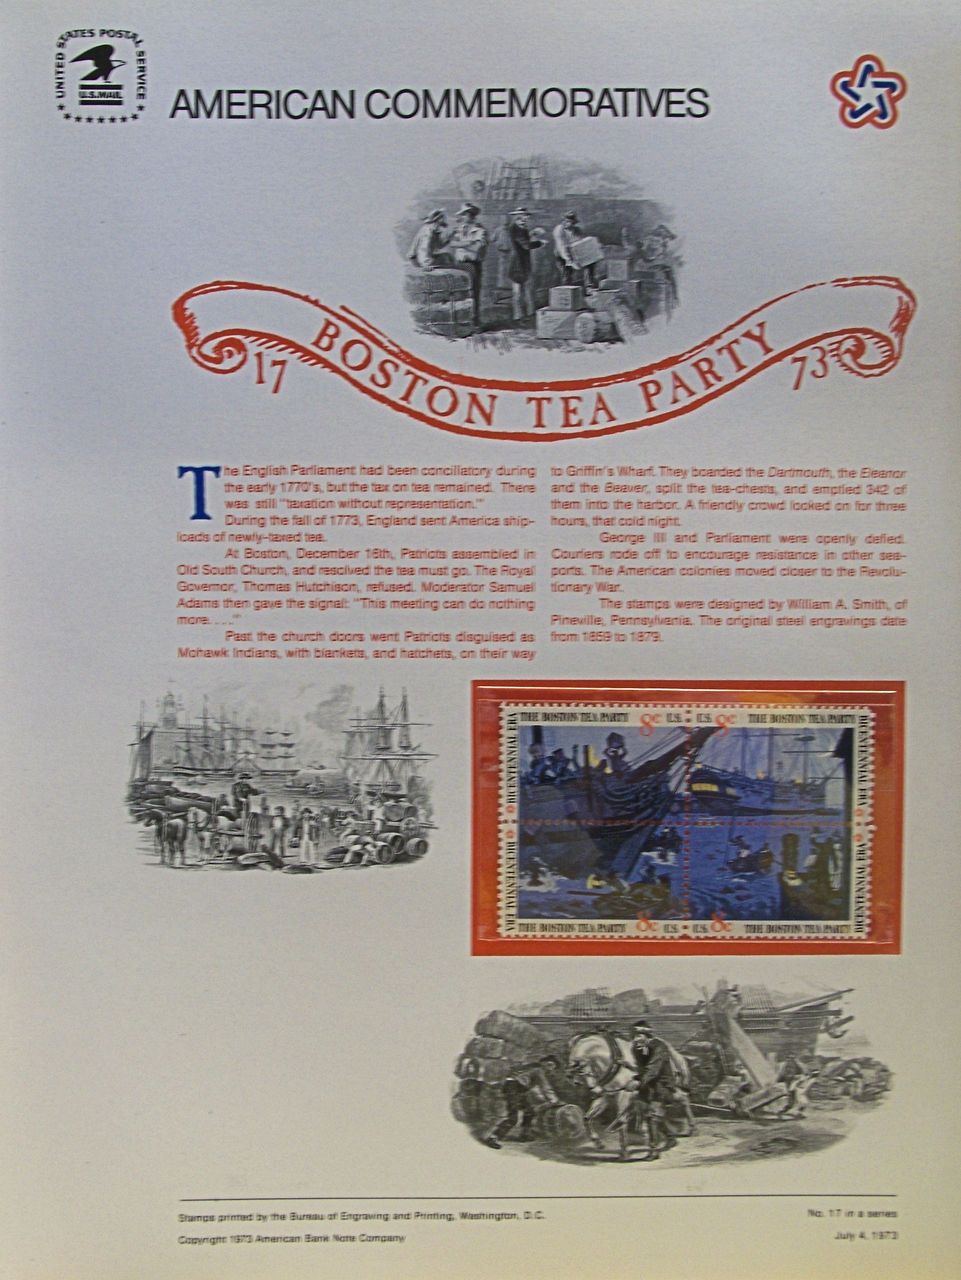 PANEL 17 US COMMERATIVE BOSTON TEA PARTY ISSUED 7